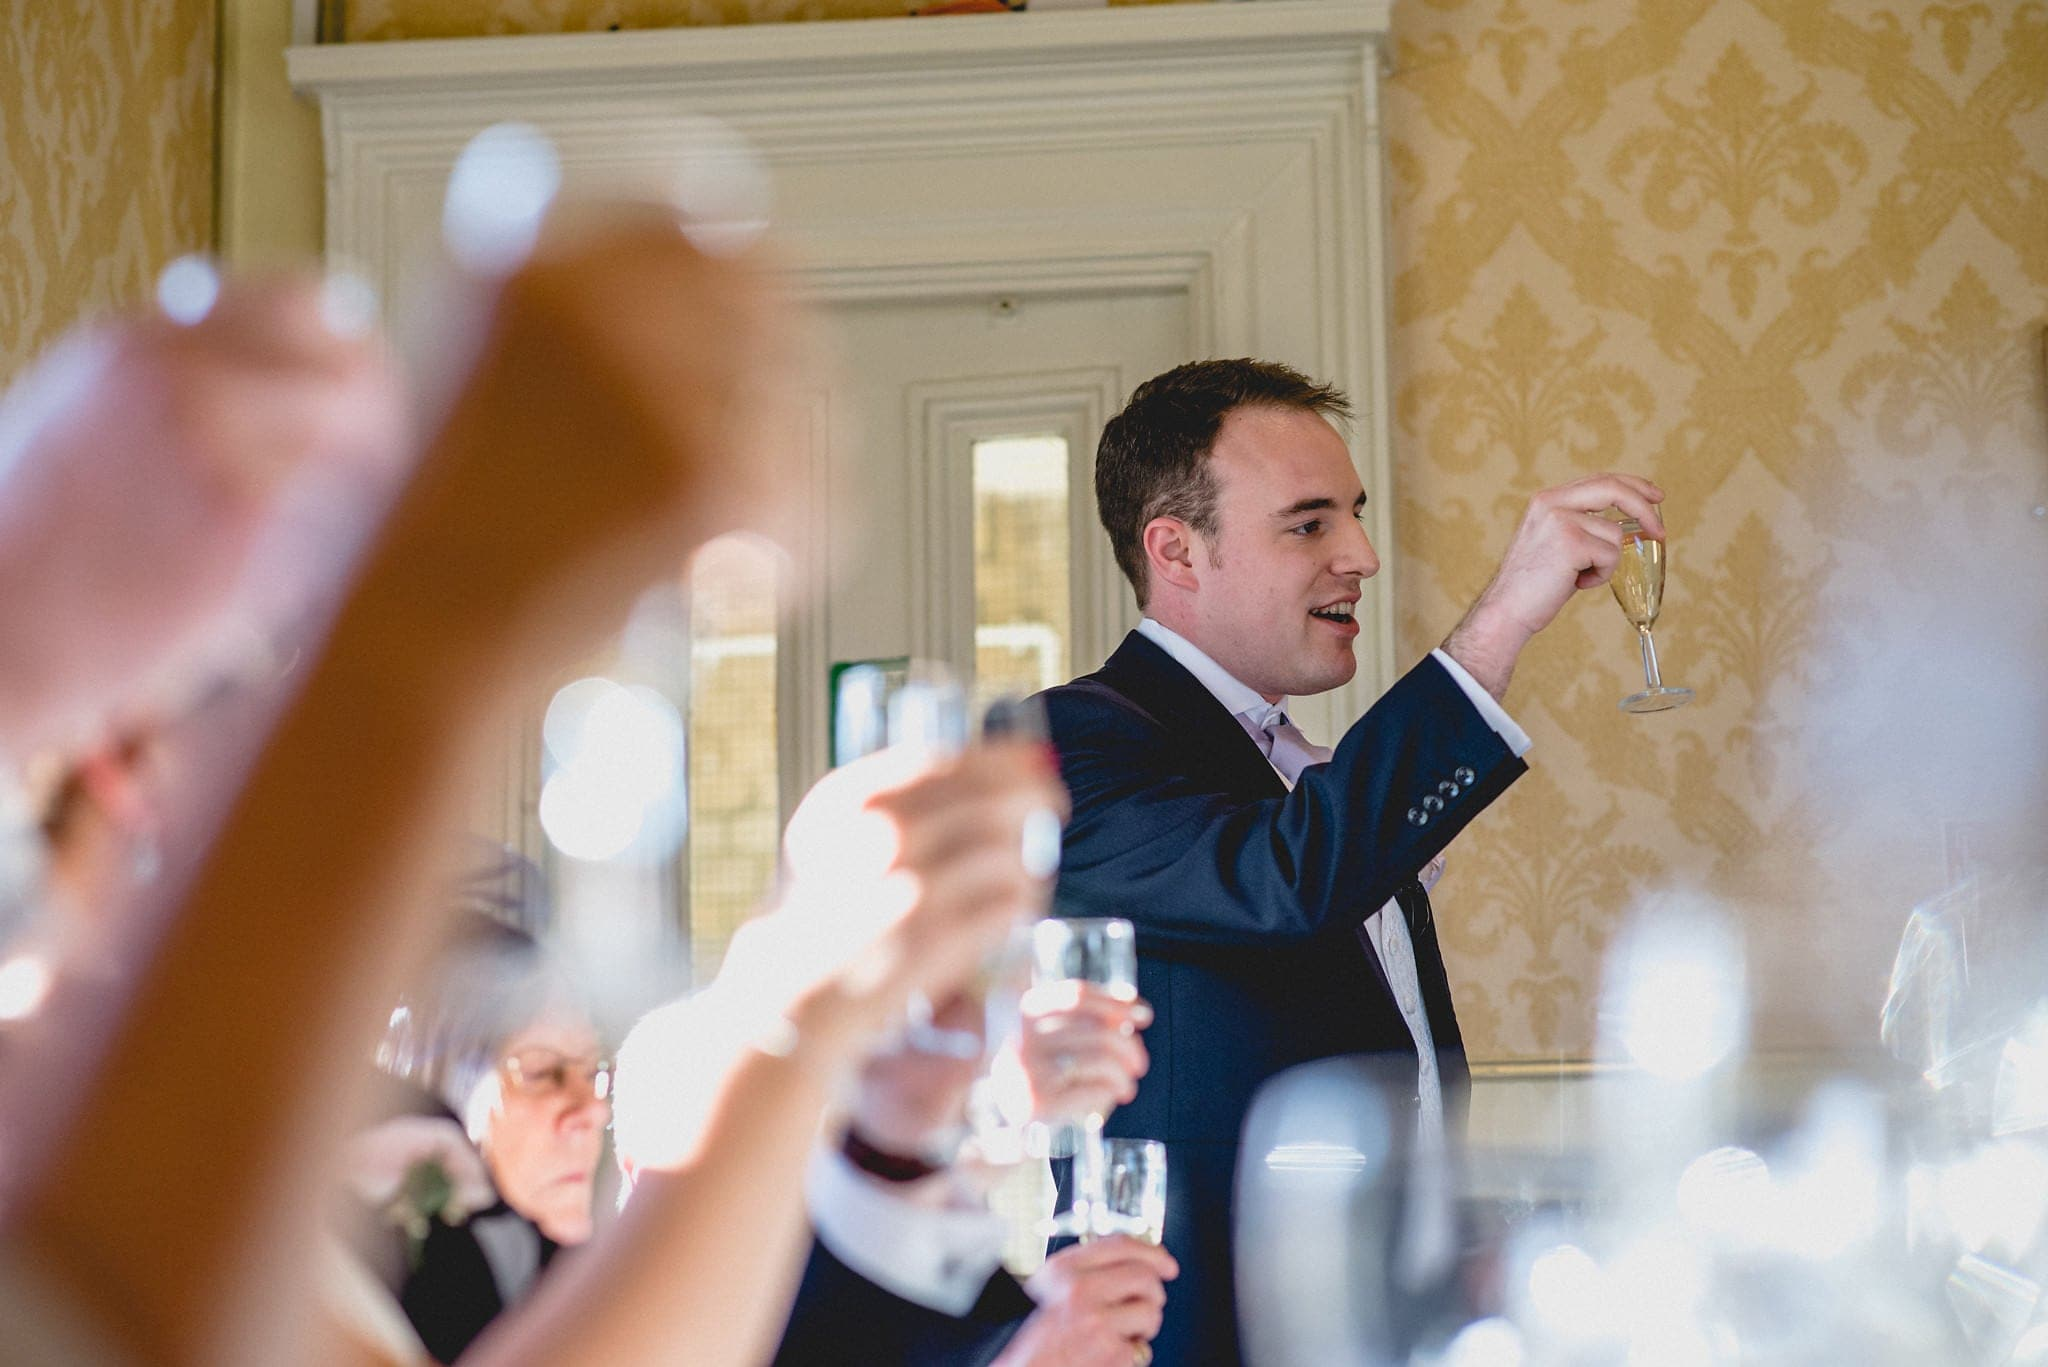 Guests raise a glass during speeches